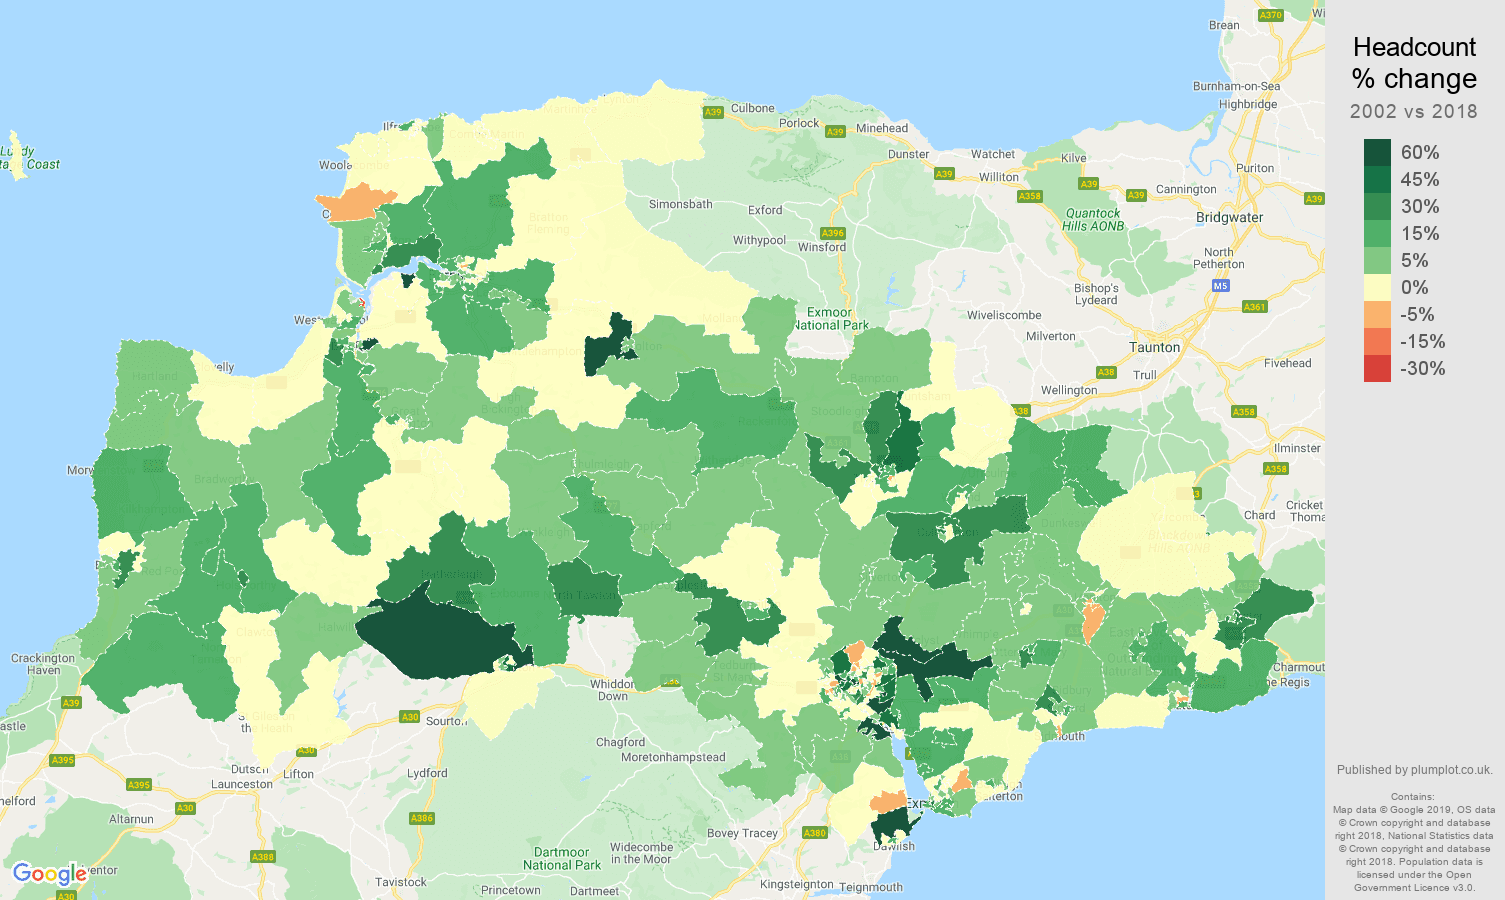 Exeter headcount change map